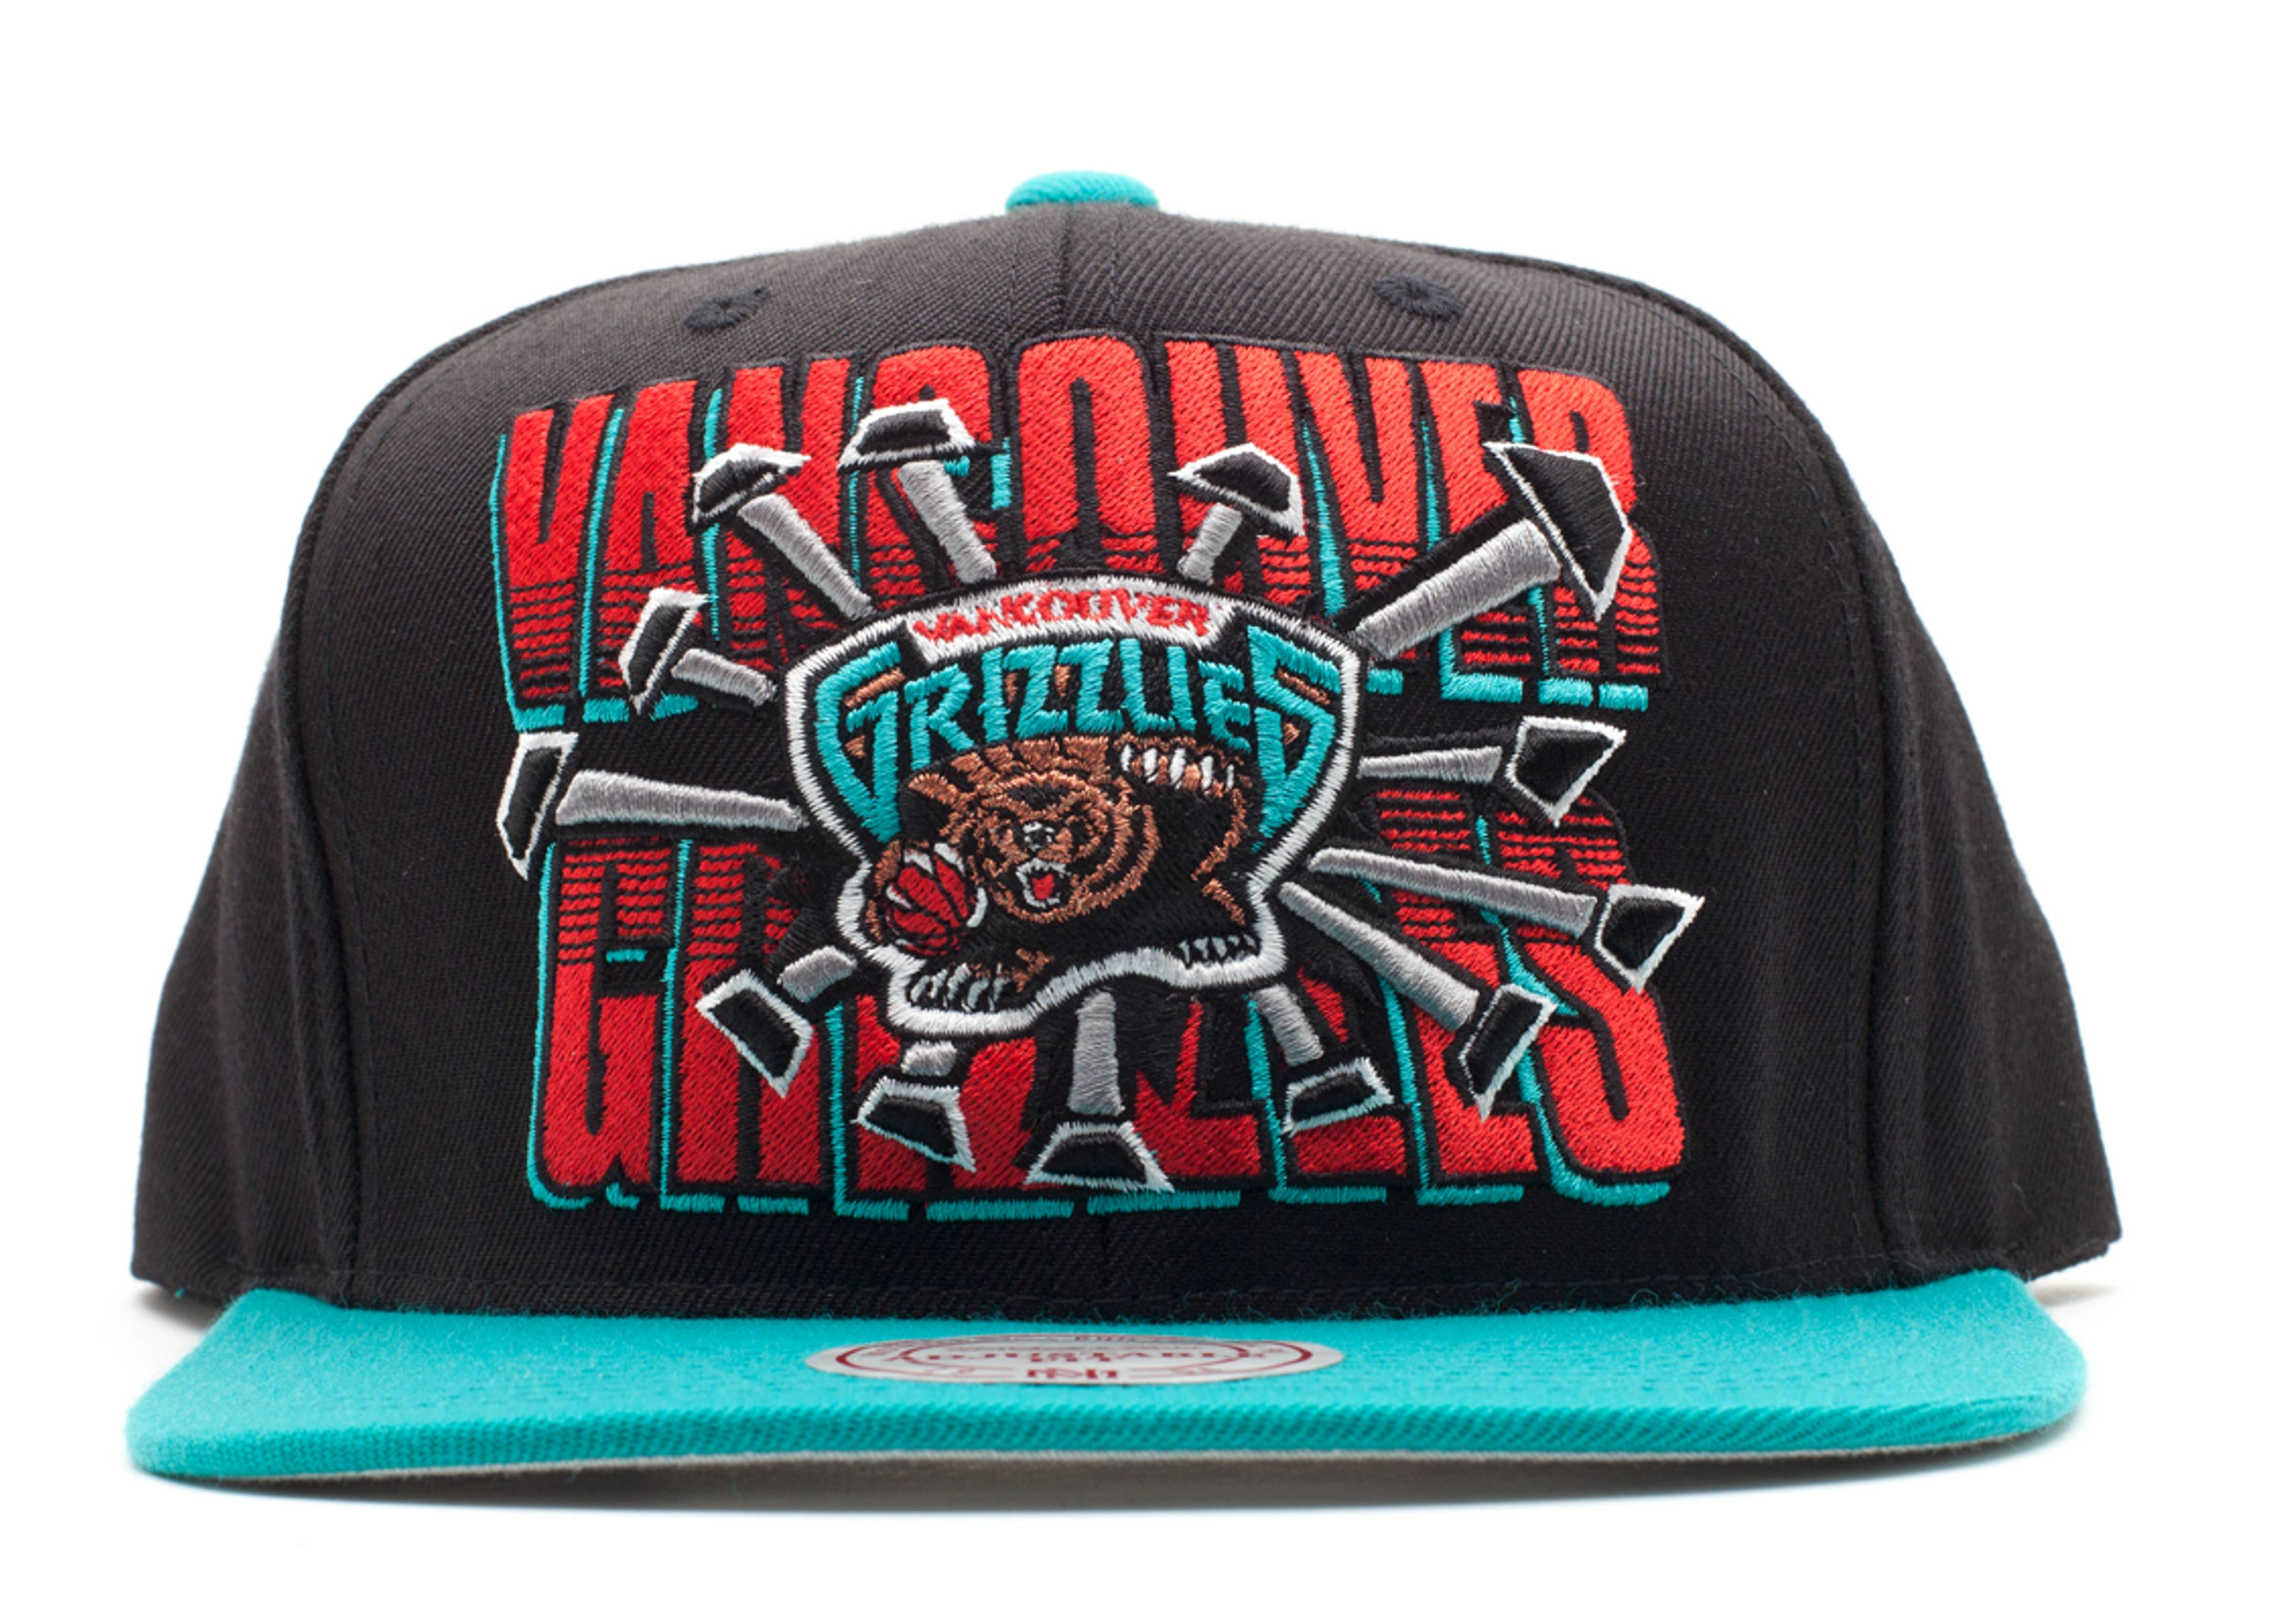 vancouver grizzles snap-back